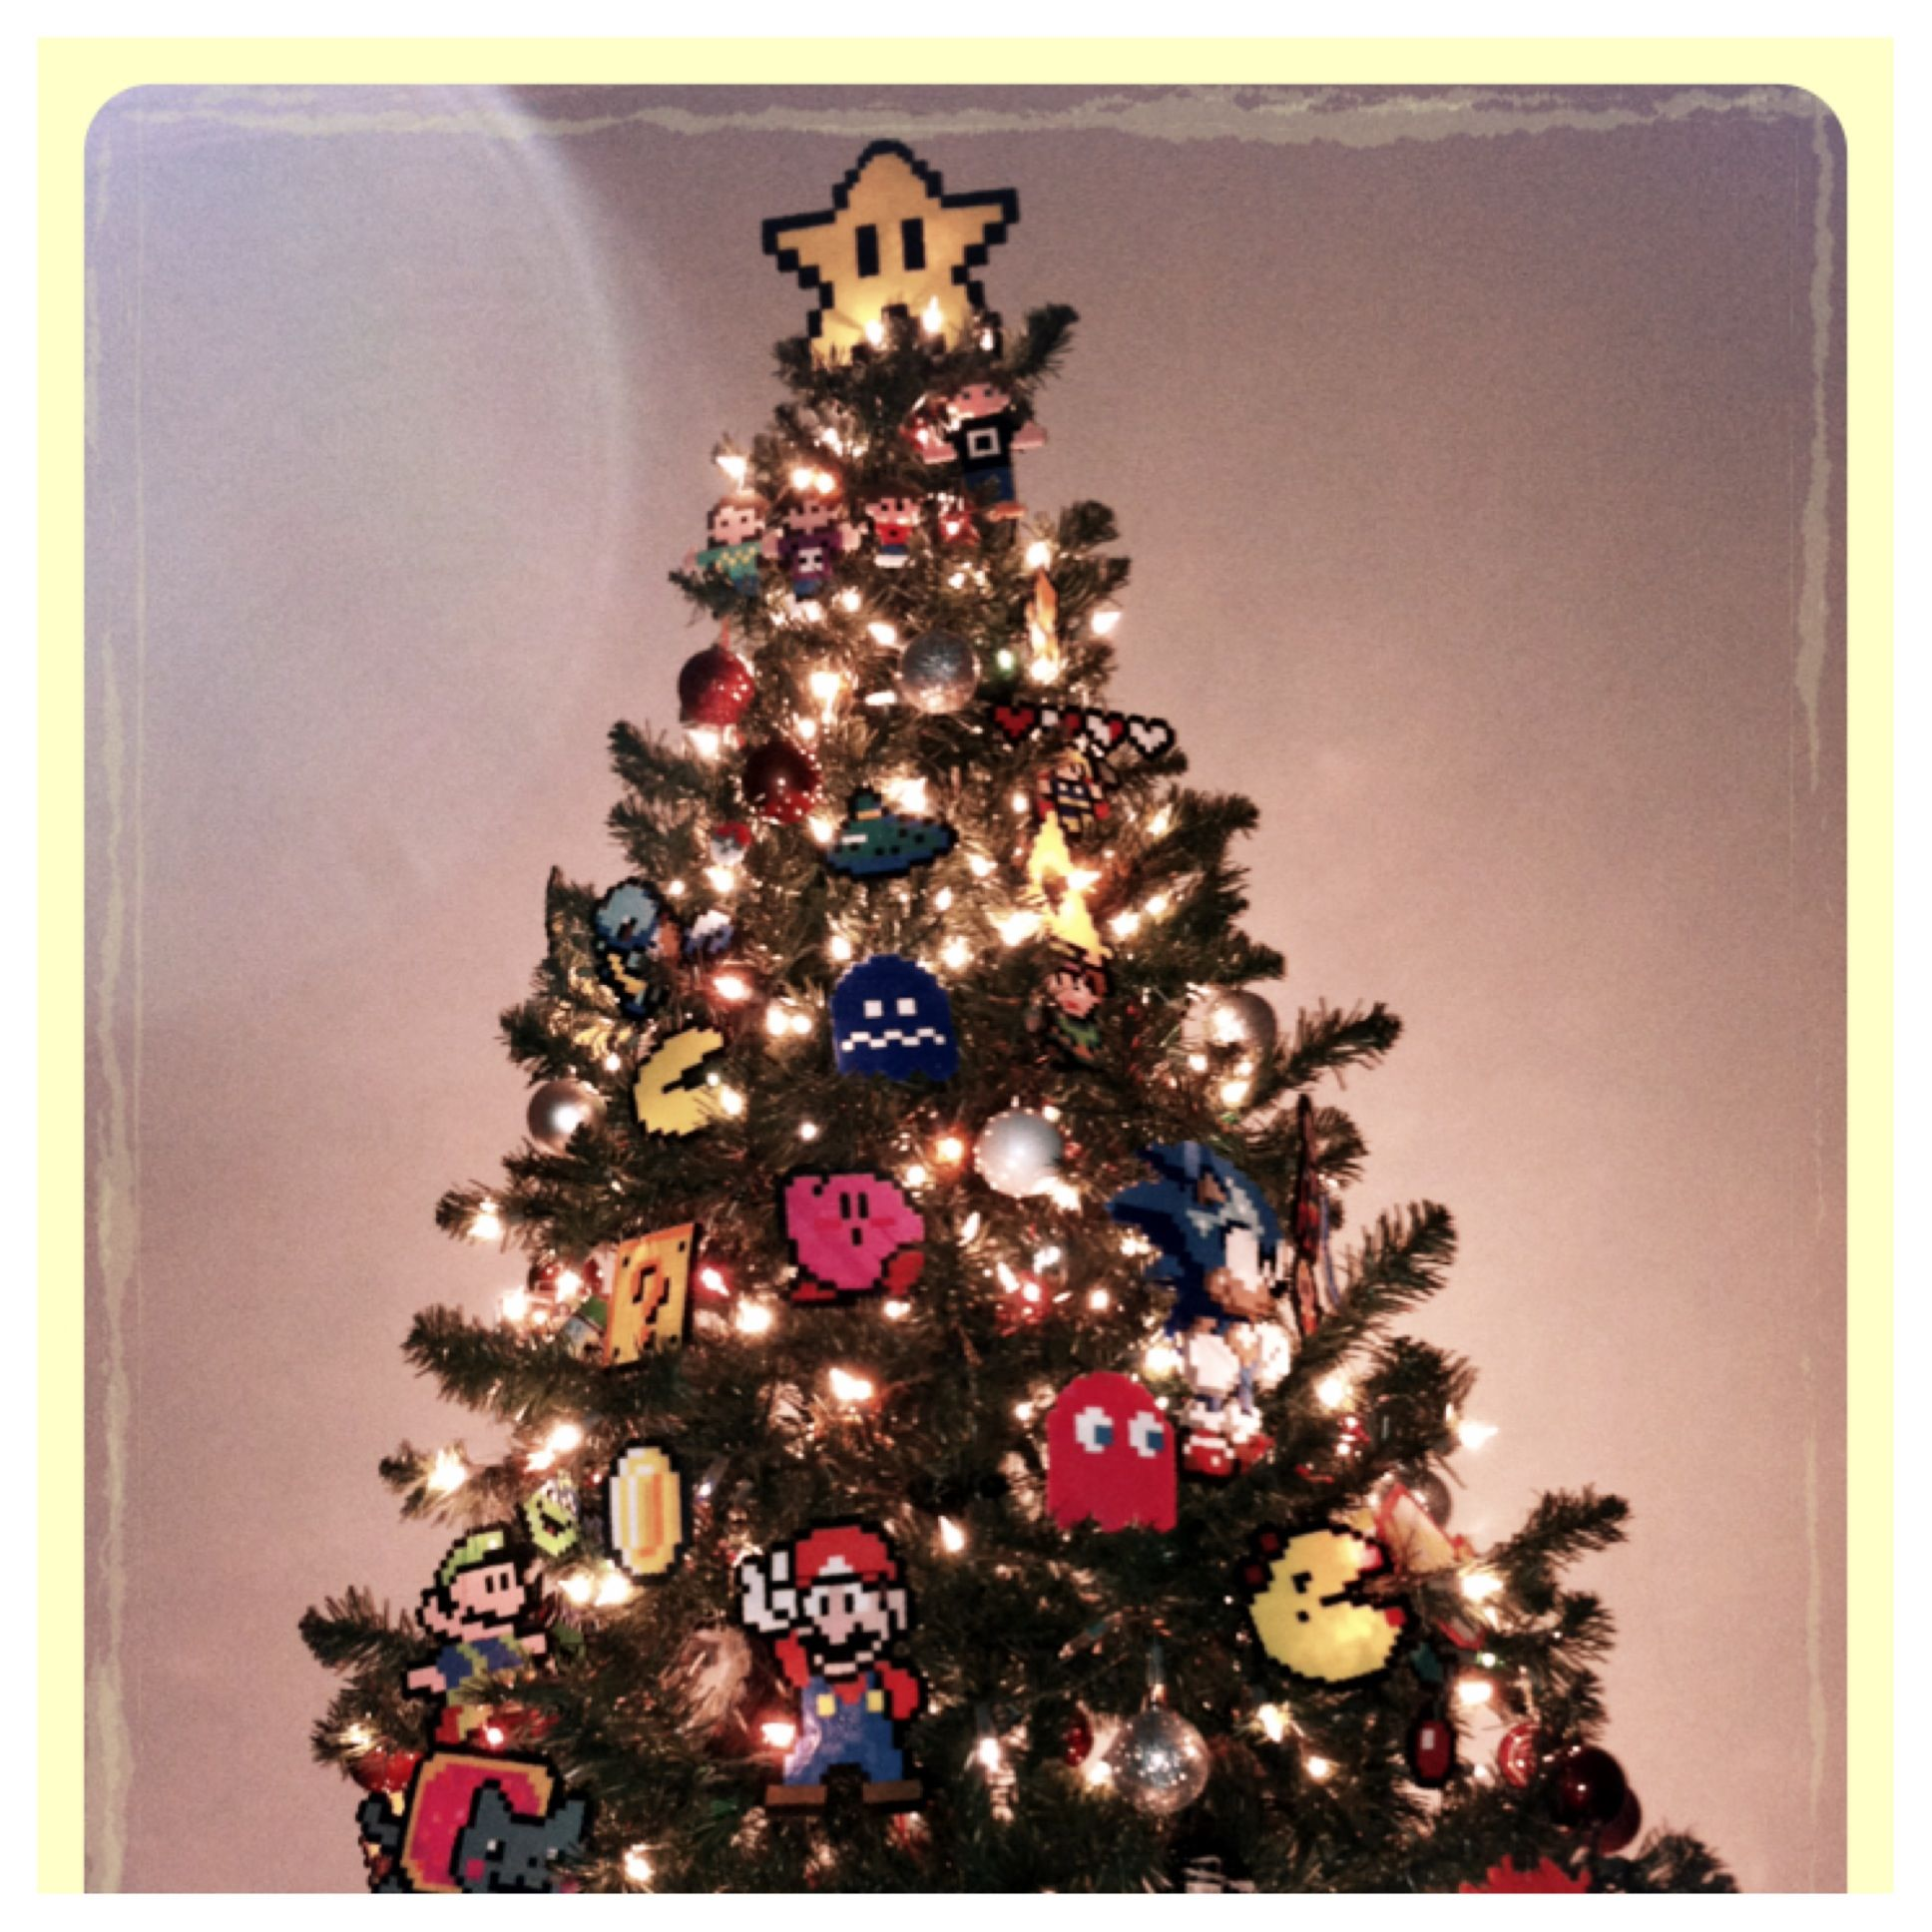 Our 8-bit Christmas tree ornaments made from perler beads. :)